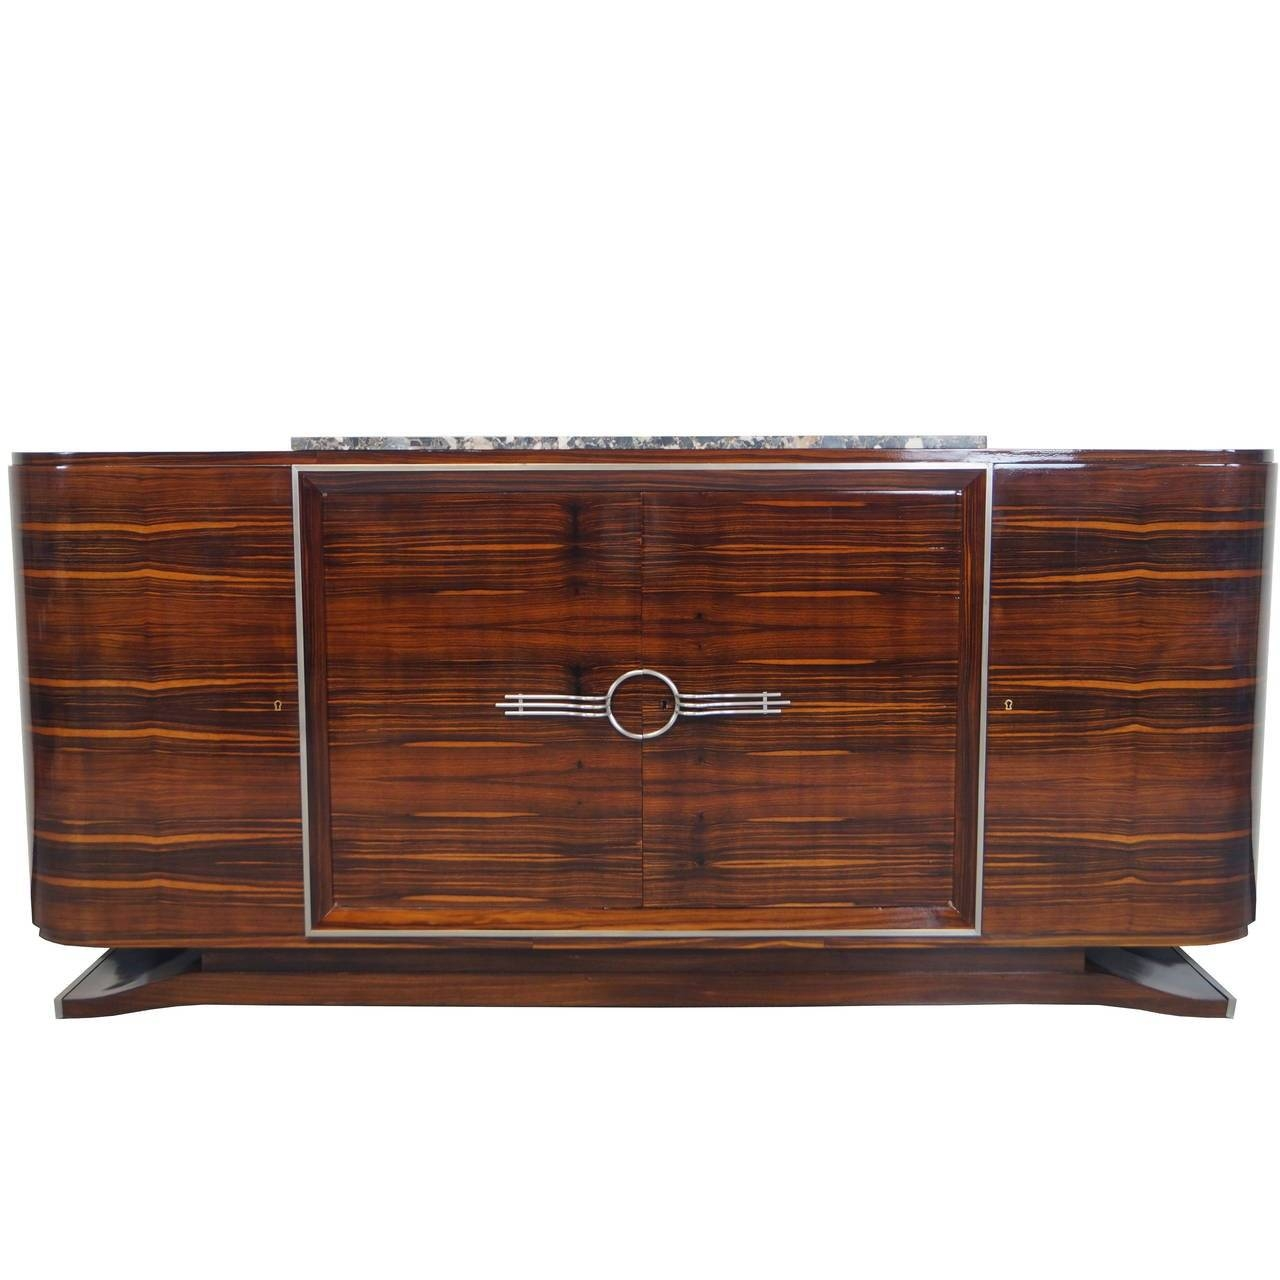 French Art Deco Sideboard At 1Stdibs In 2017 Art Deco Sideboards (#8 of 15)